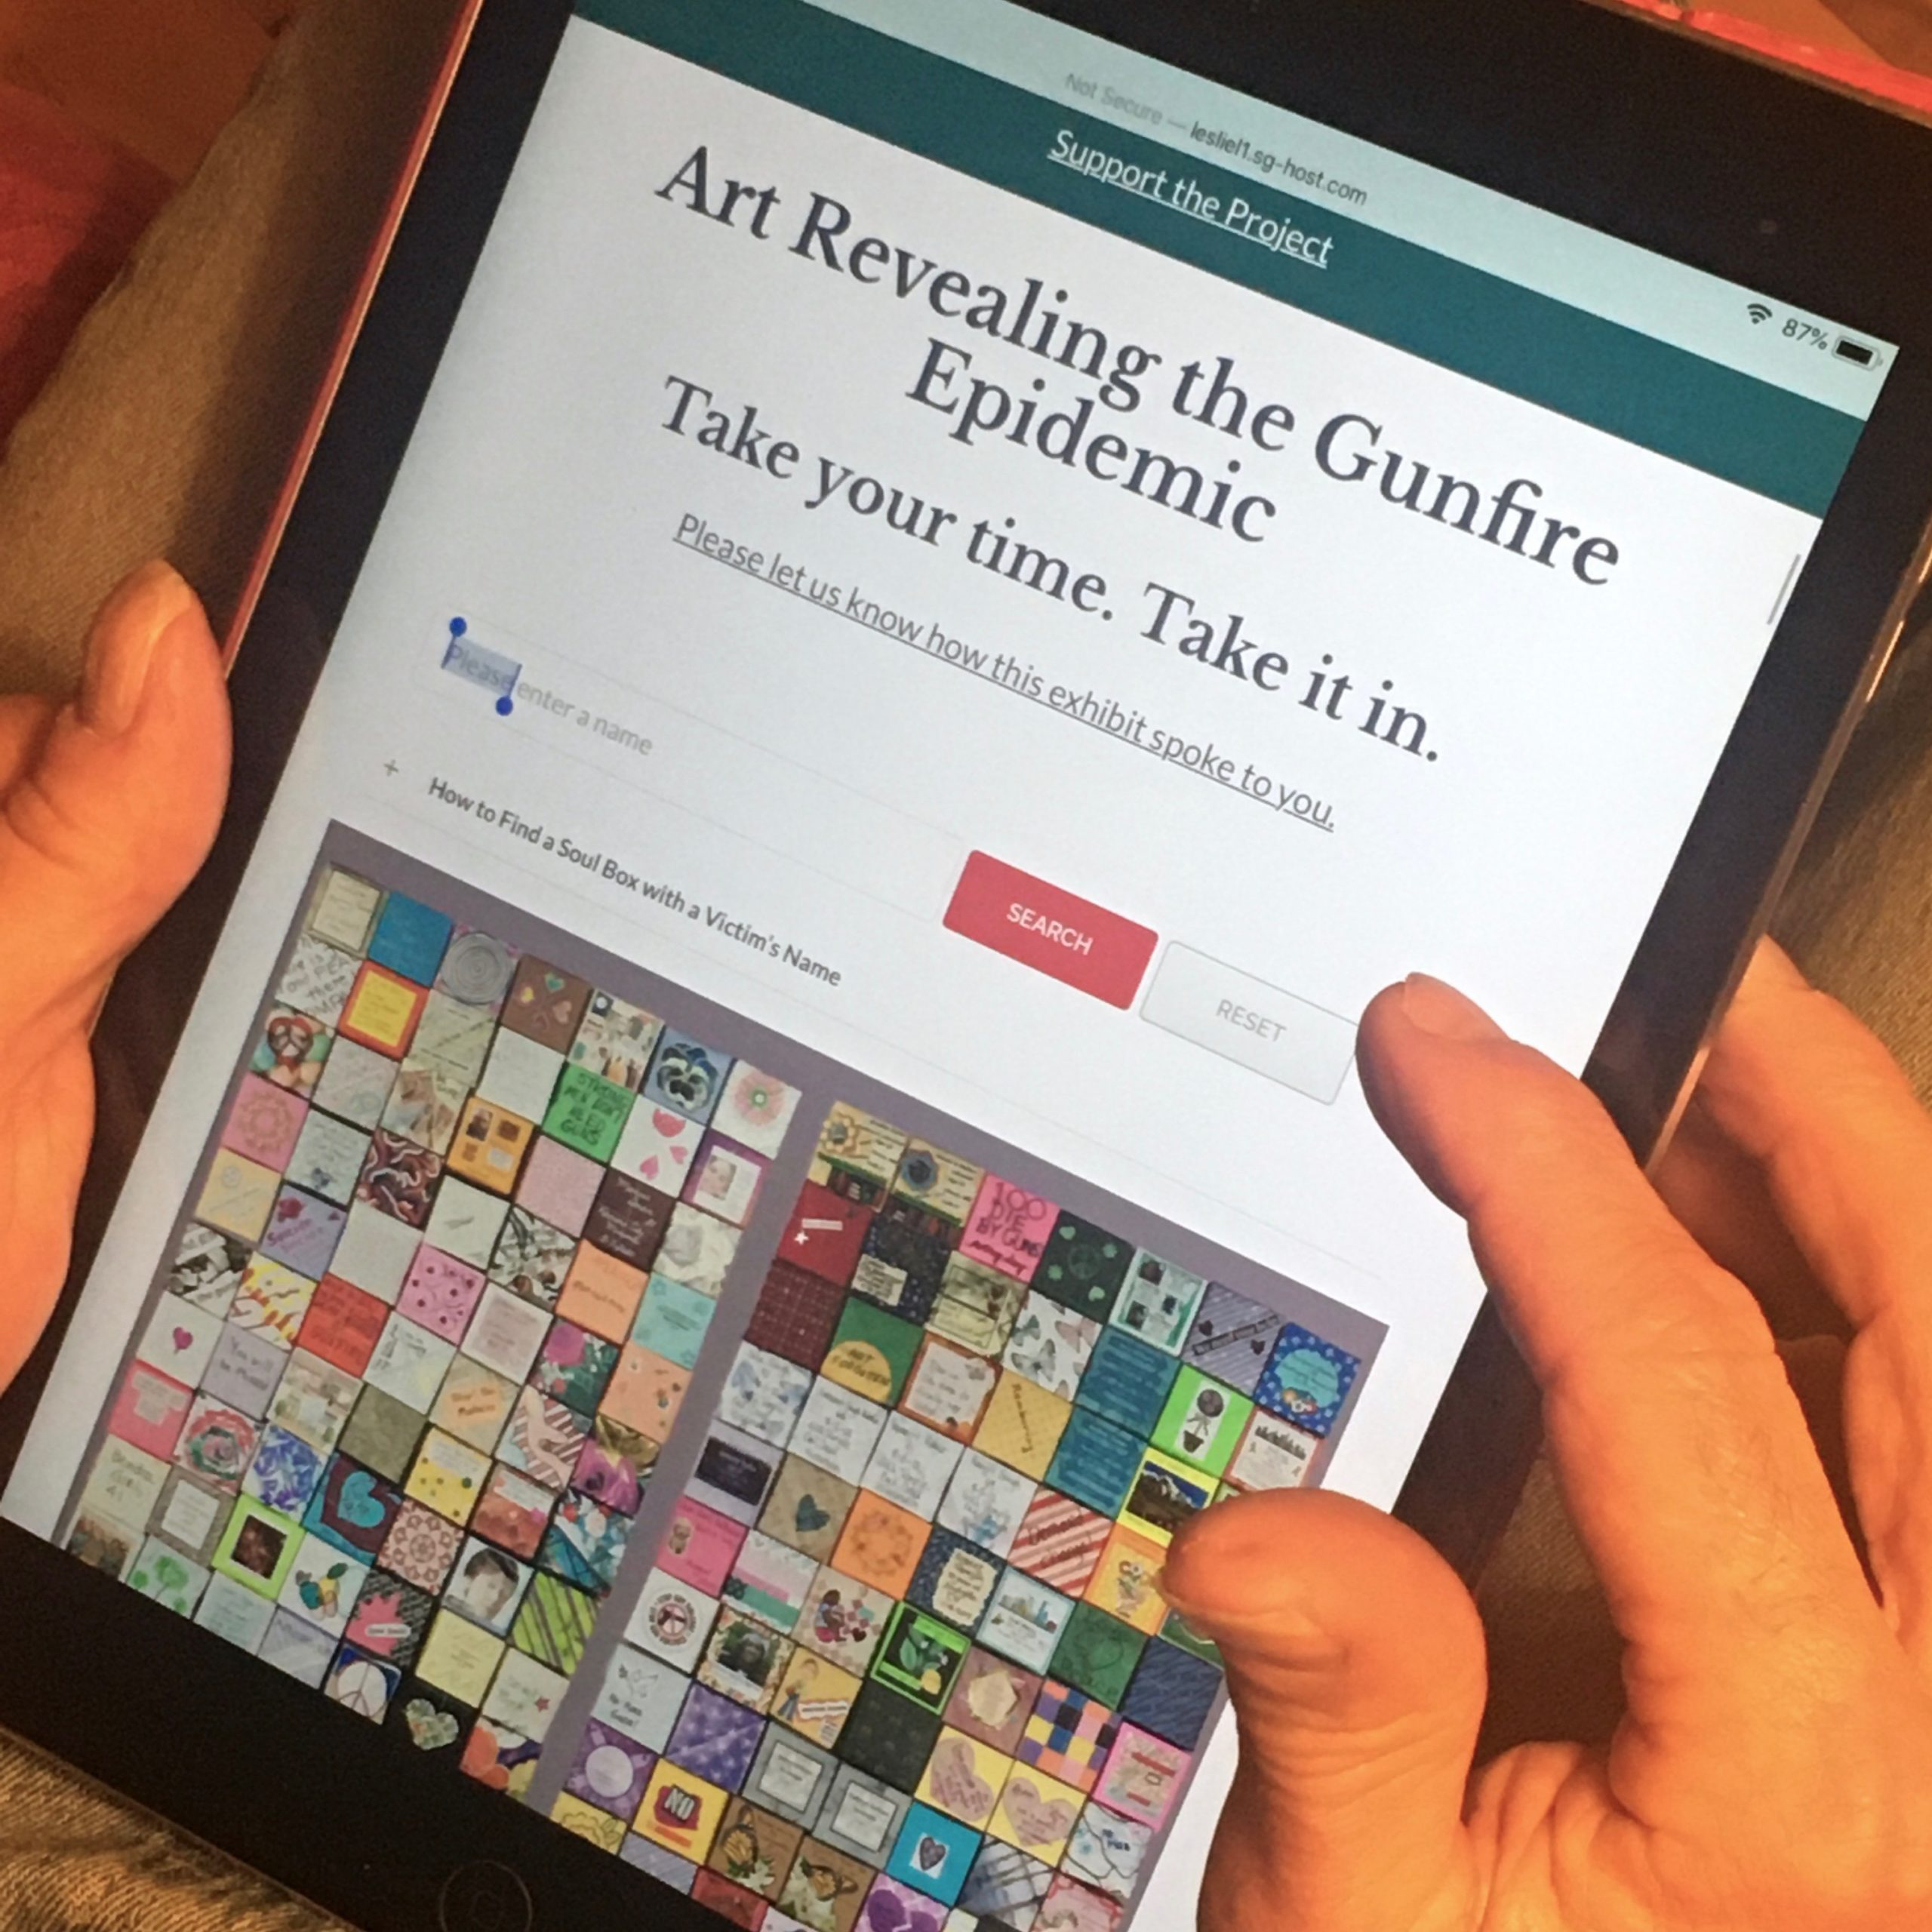 Tablet displays online exhibit search page